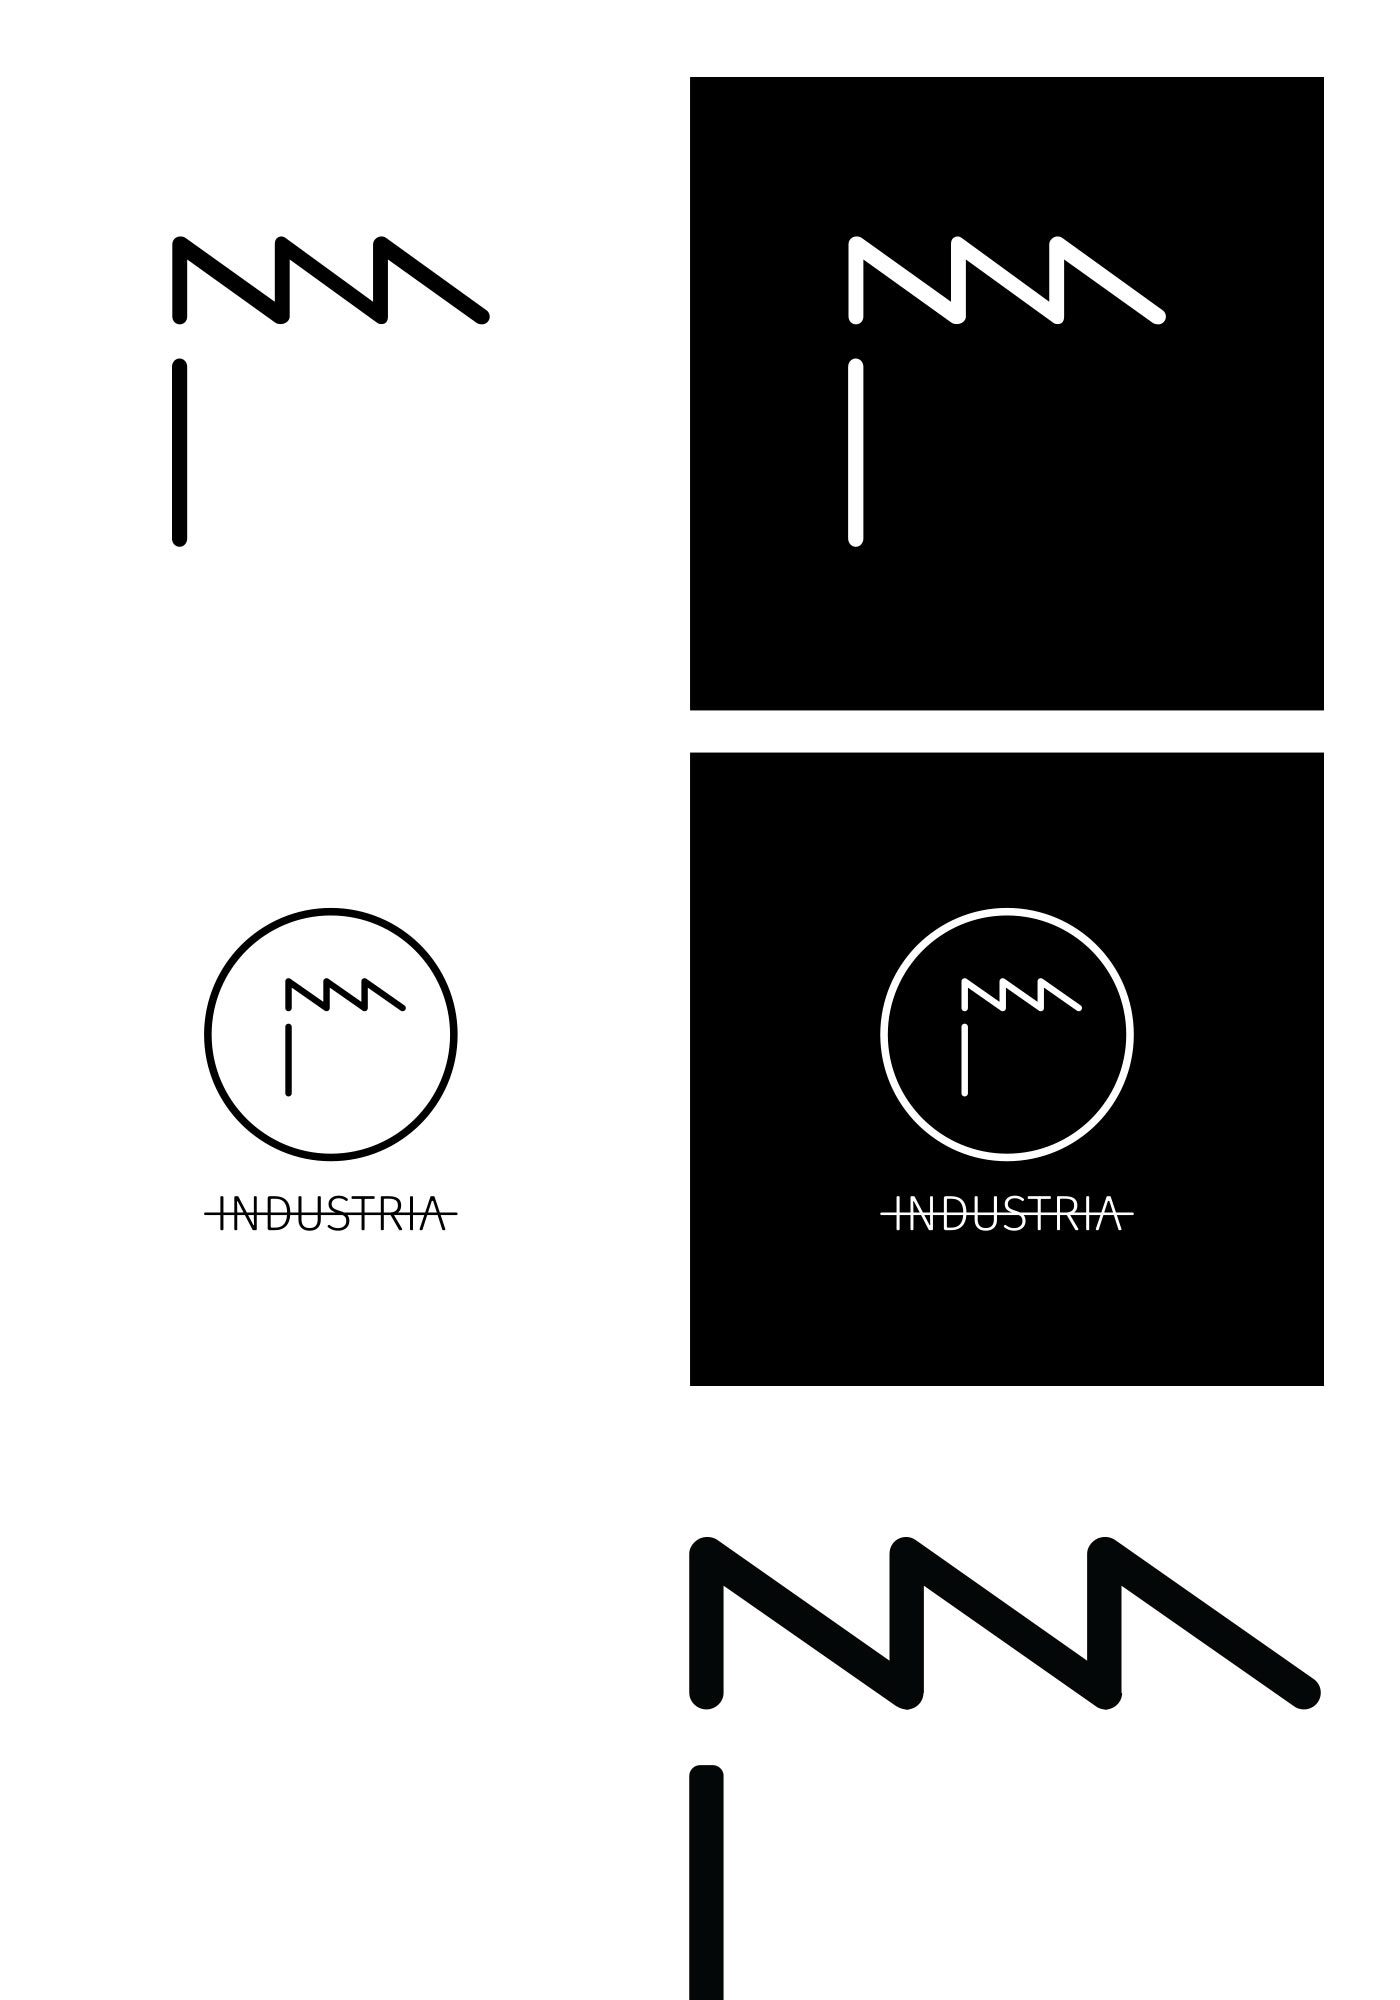 industria logo design 2